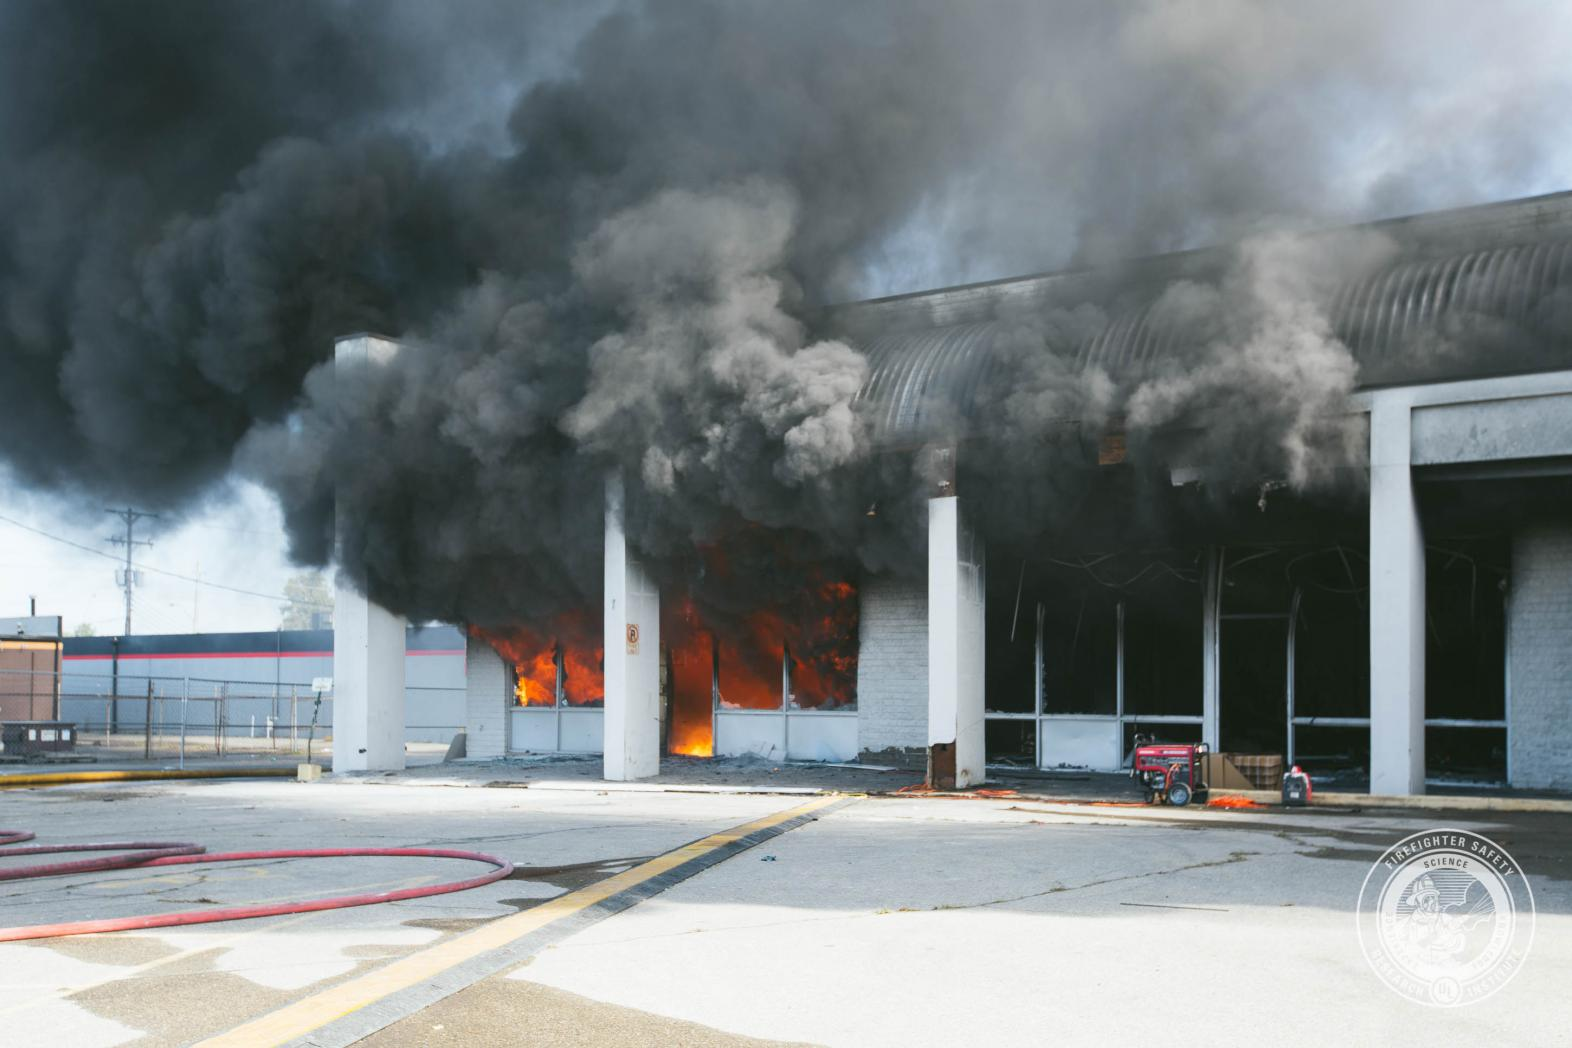 Commercial strip mall front with smoke and flames showing from the windows